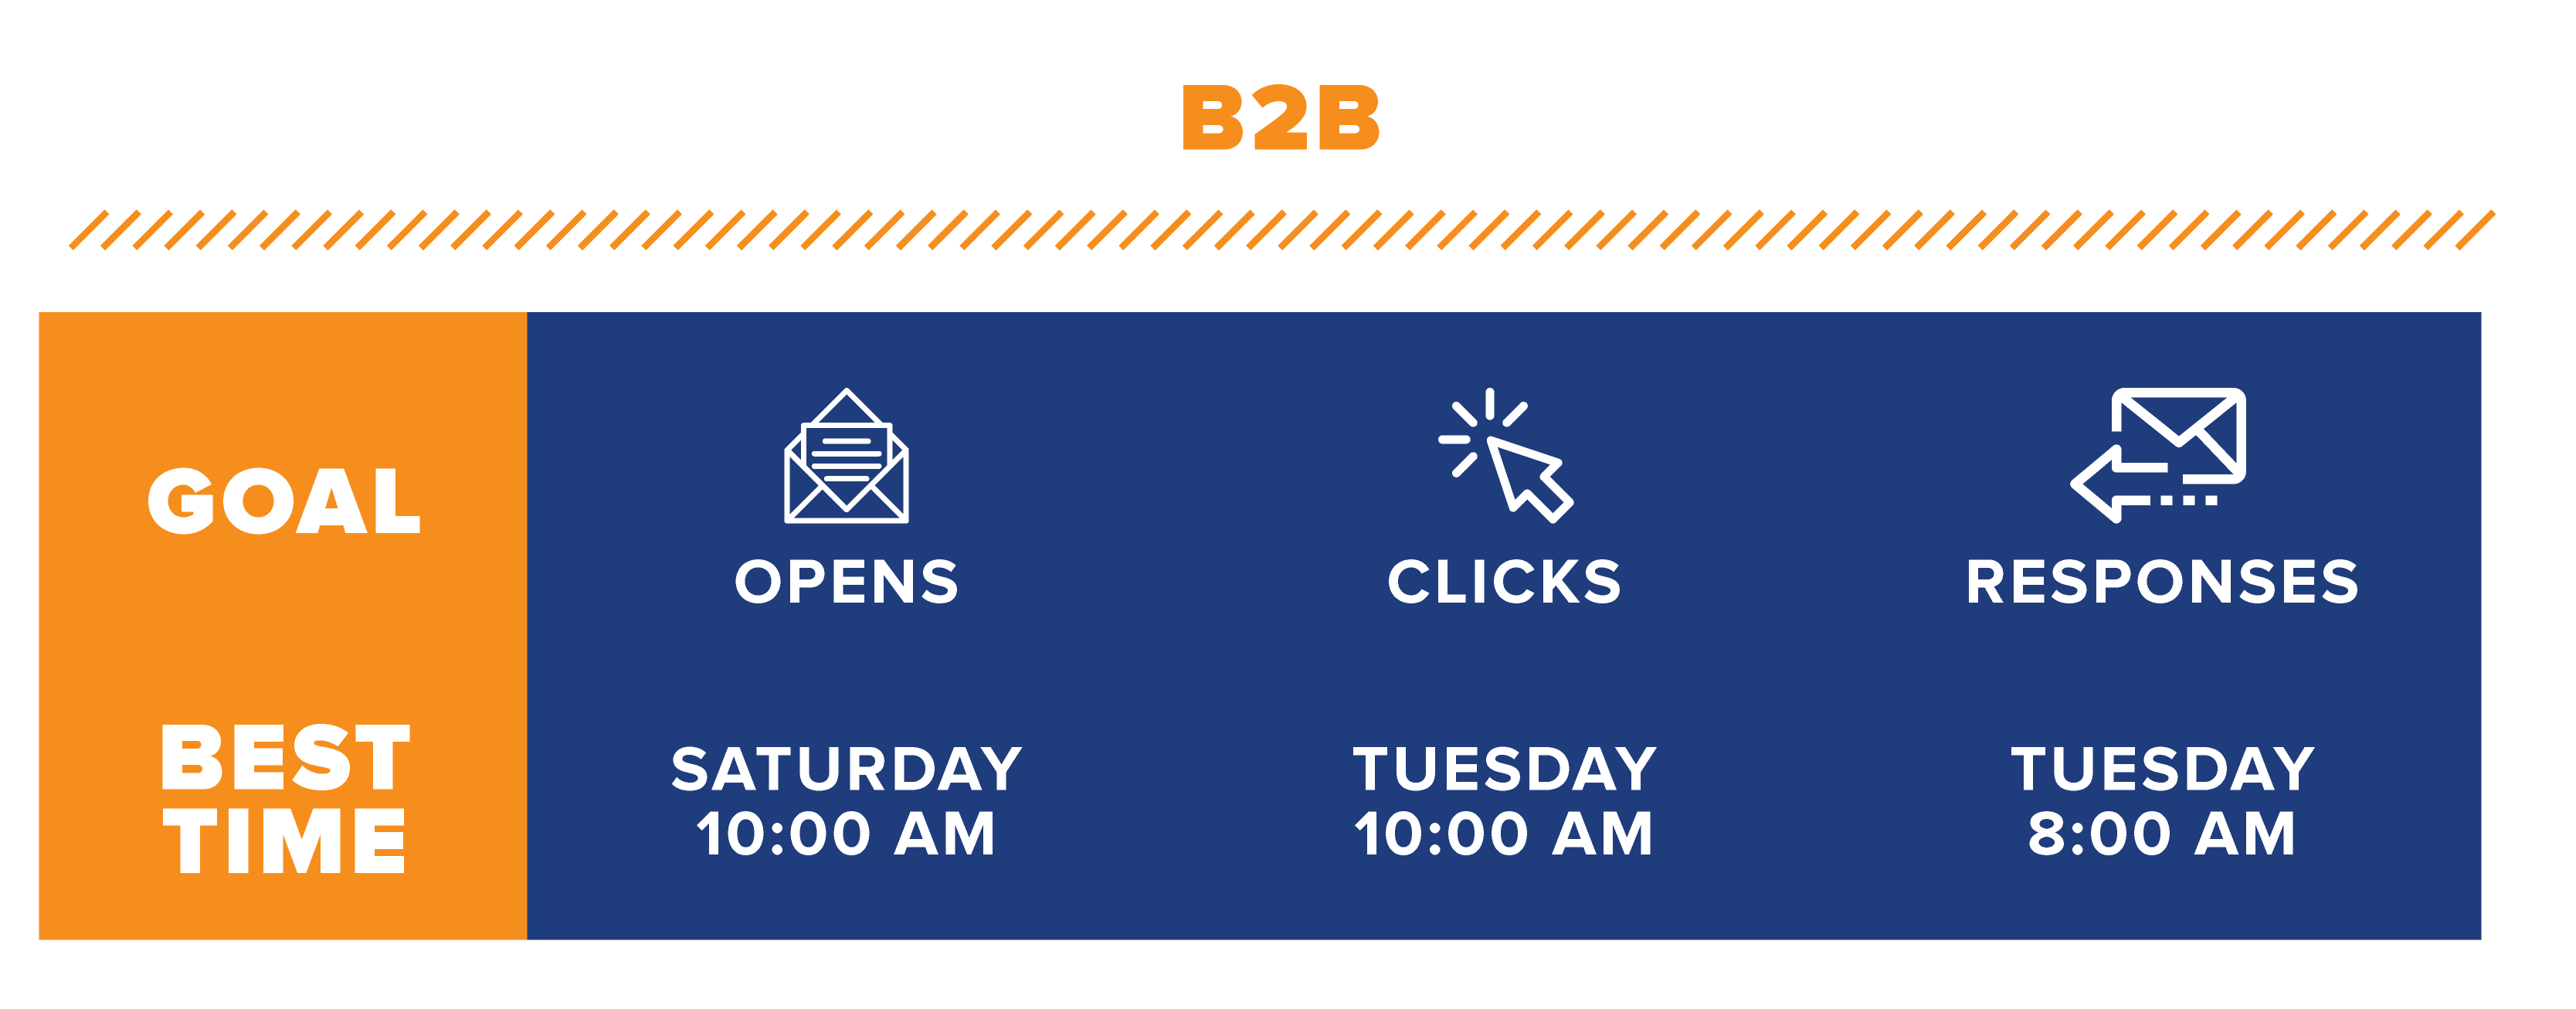 Infographic showing the best times to send emails based on opens, clicks, and responses